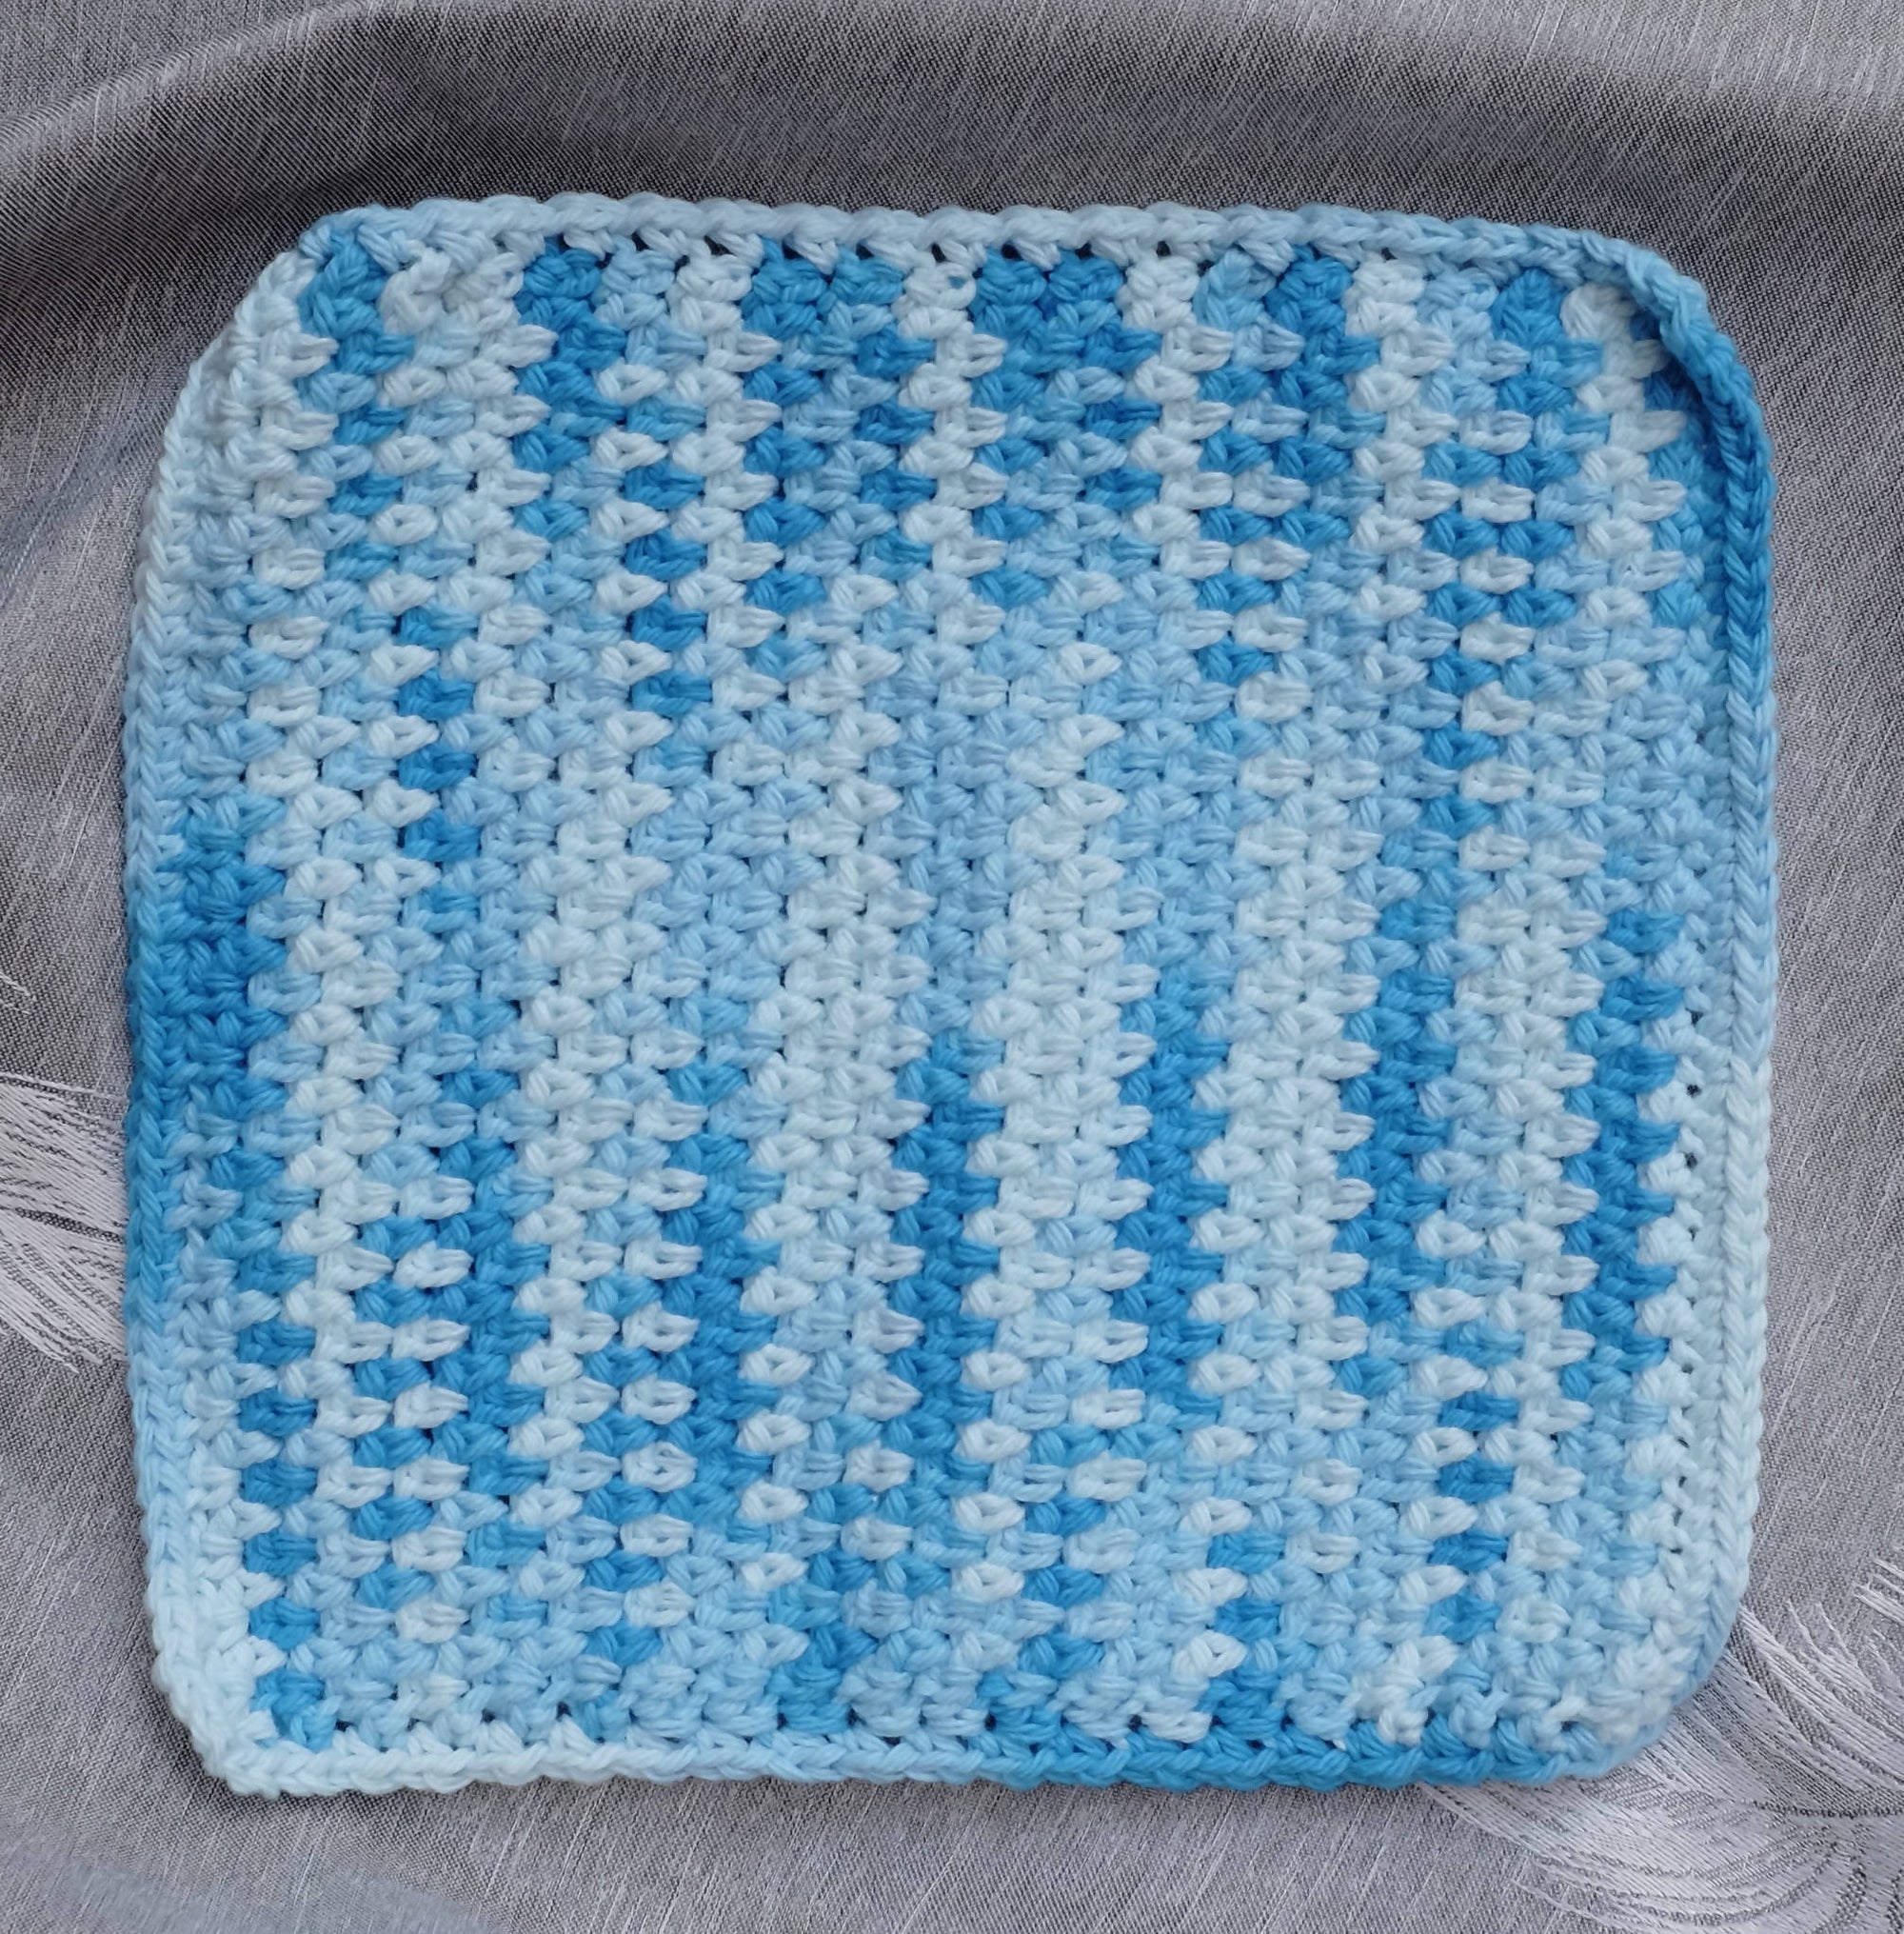 Ombre Crocheted Dishcloth